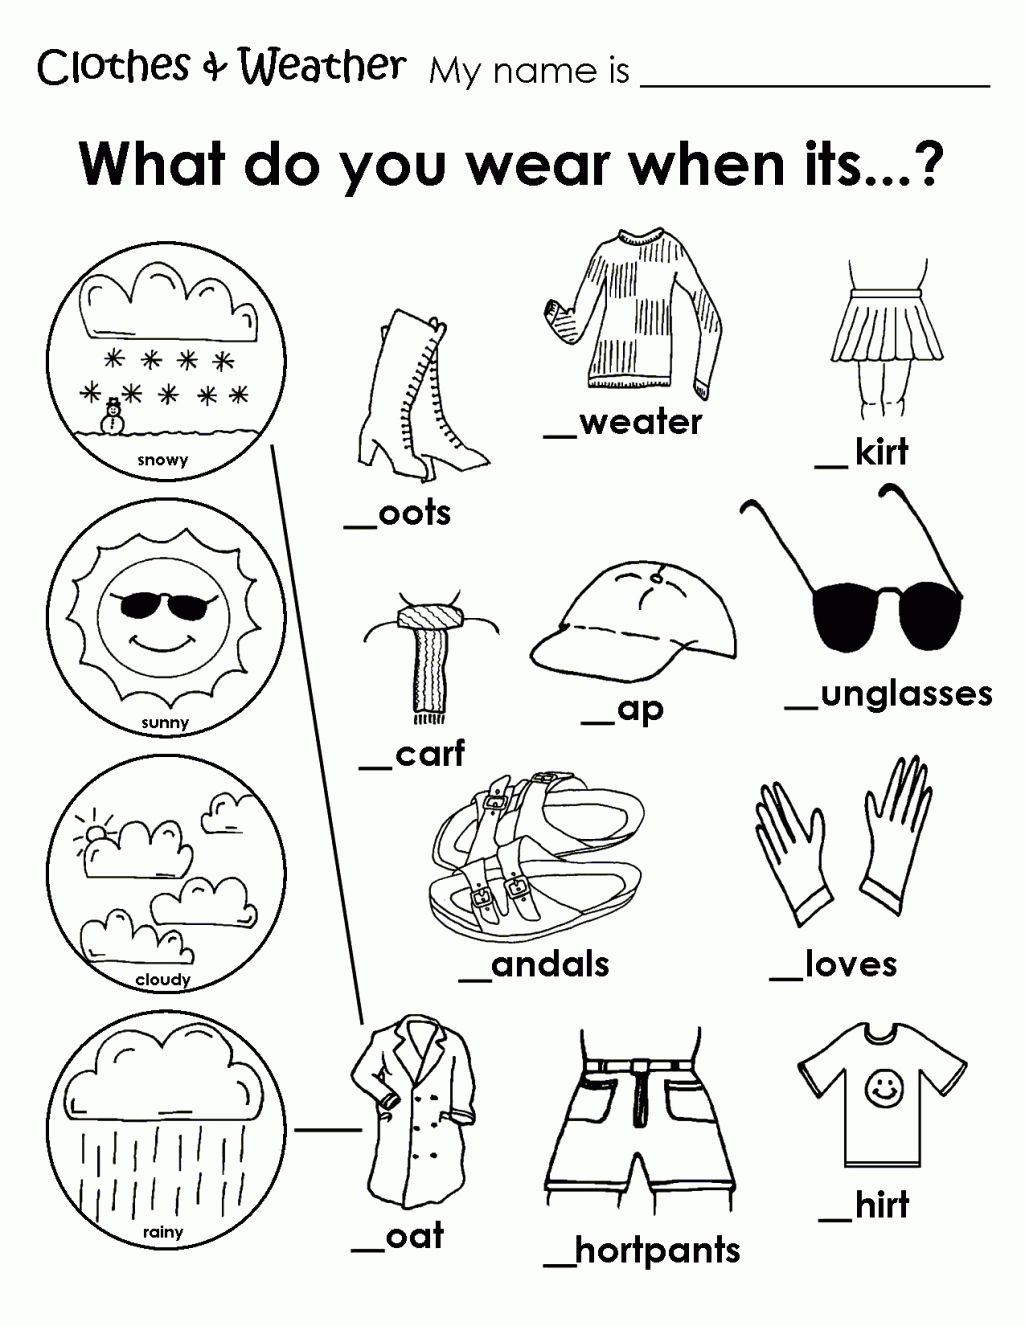 Printable Weather Clothes Worksheet With Images